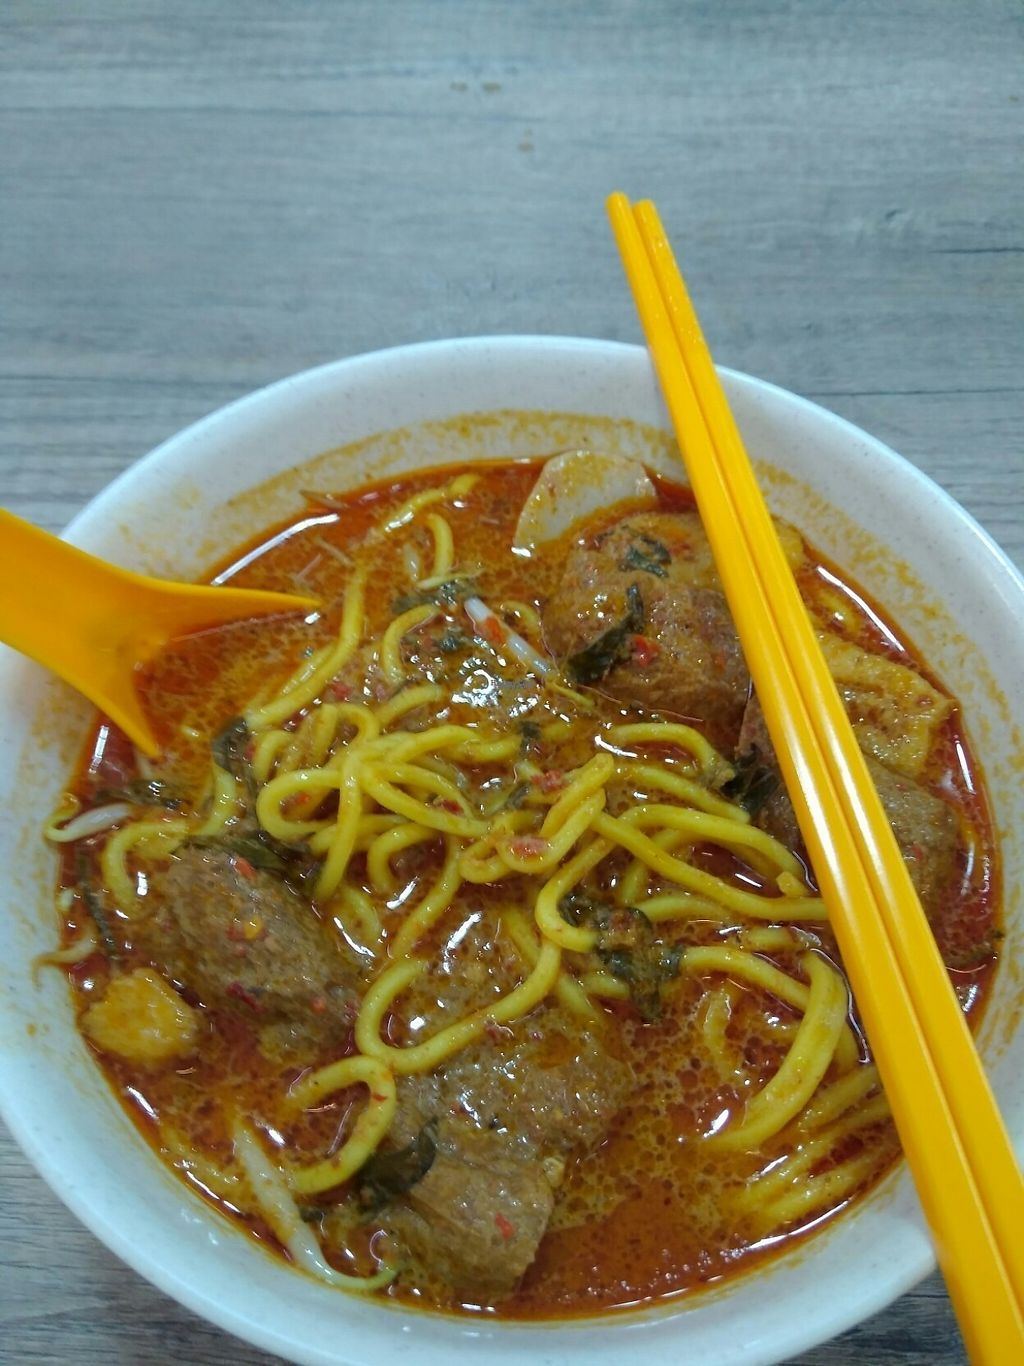 """Photo of Jia Le Yuan Vegetarian  by <a href=""""/members/profile/RichardLee"""">RichardLee</a> <br/>Daily Special for Friday Laksa (very spicy) <br/> January 20, 2017  - <a href='/contact/abuse/image/85431/213471'>Report</a>"""